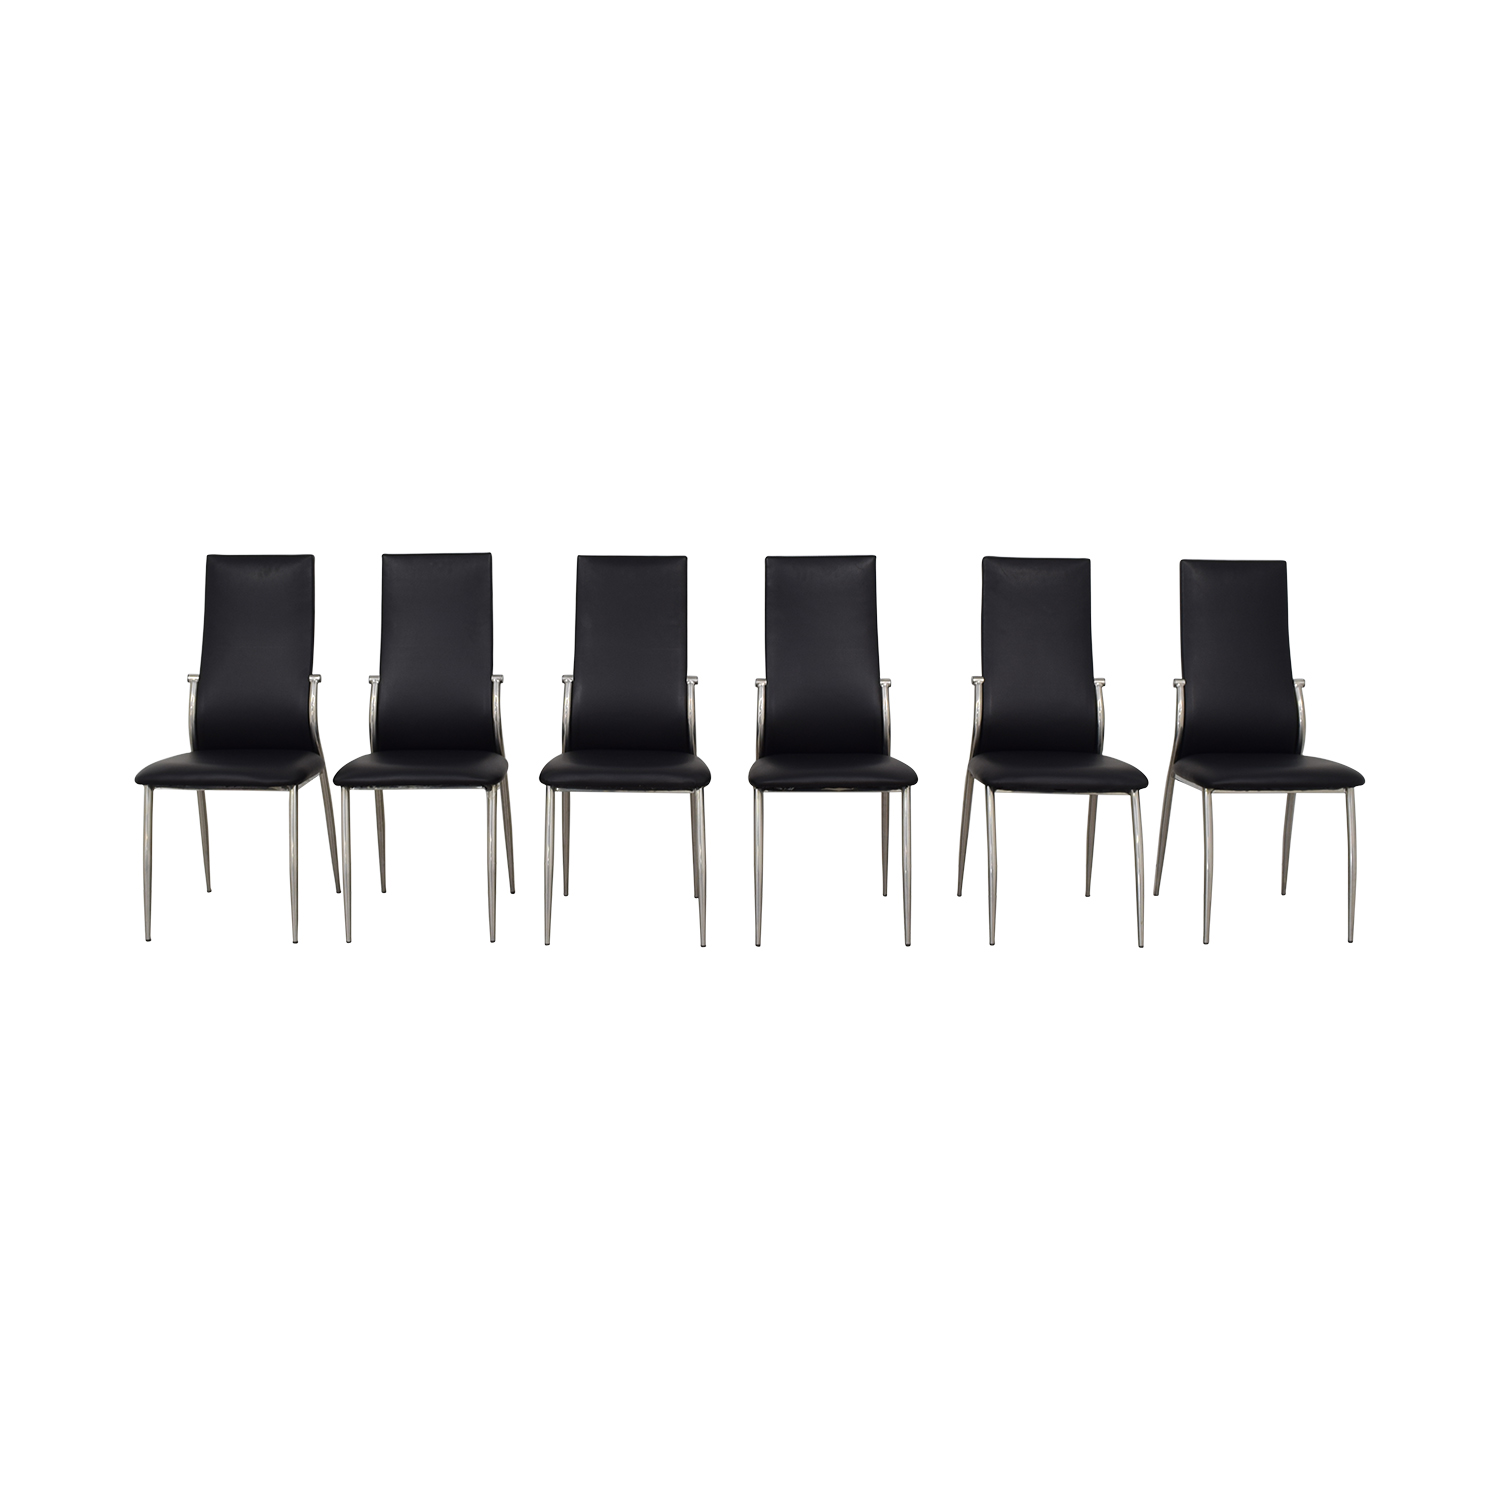 Huffman Koos Dining Chairs / Dining Chairs